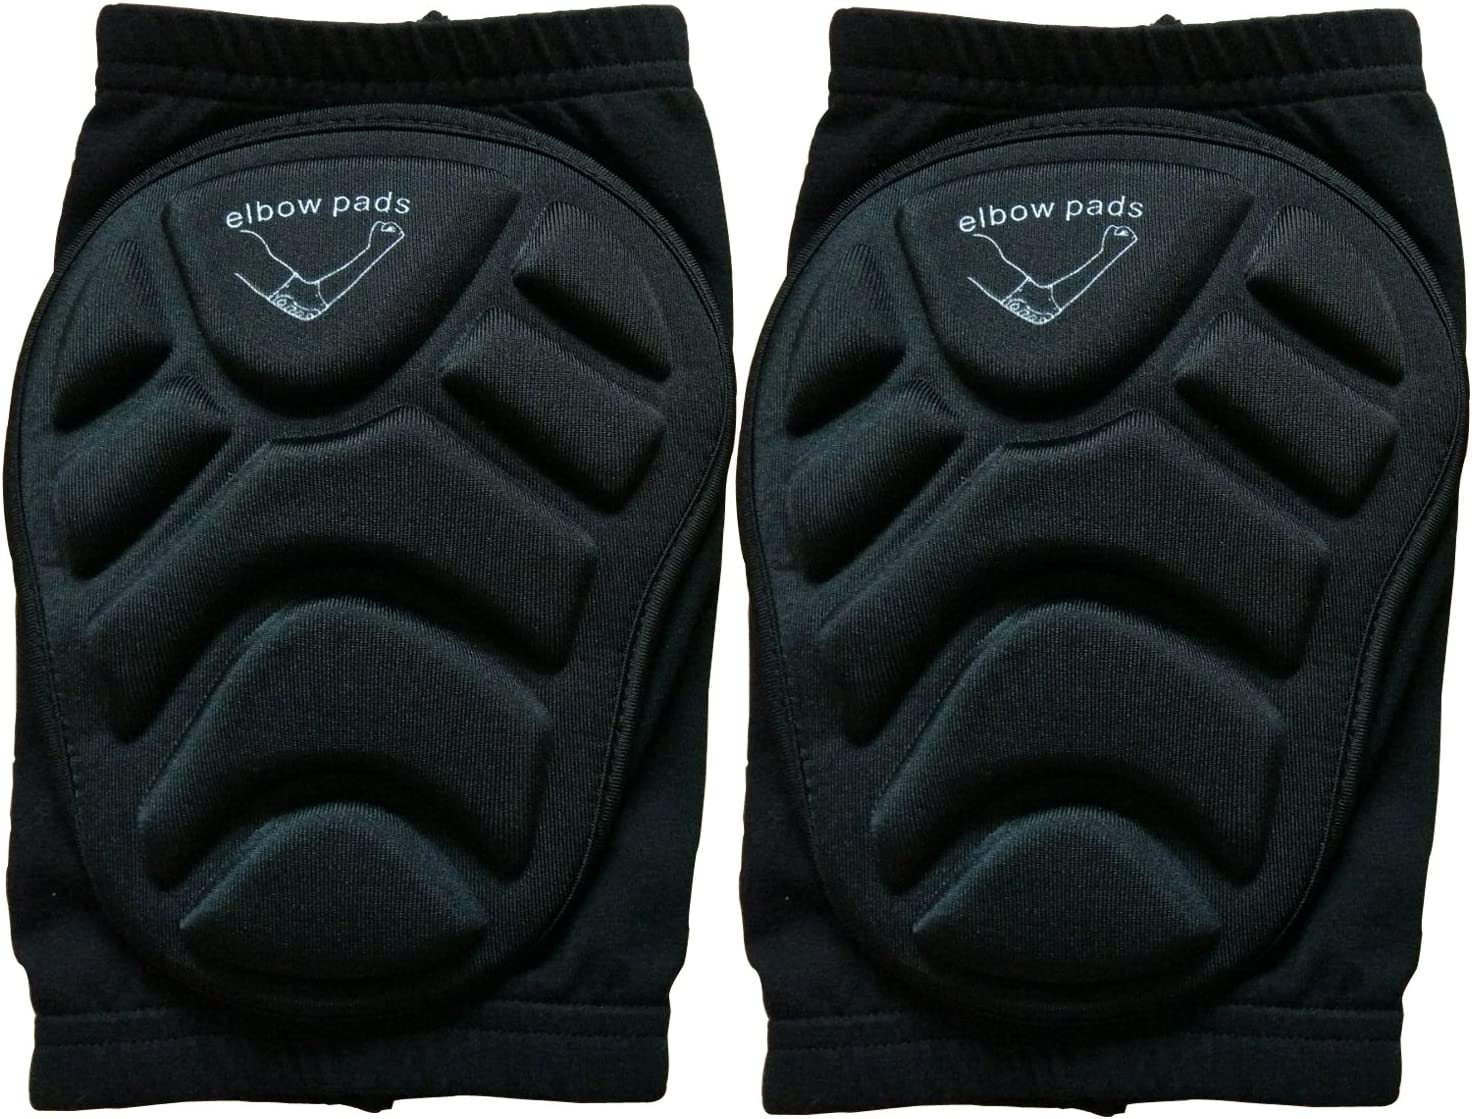 Guide Protective Elbow Pads Support Compression Padded Shooter Sleeve Protective Gear for Basketball Skateboard Skiing,Skating,and Cycling